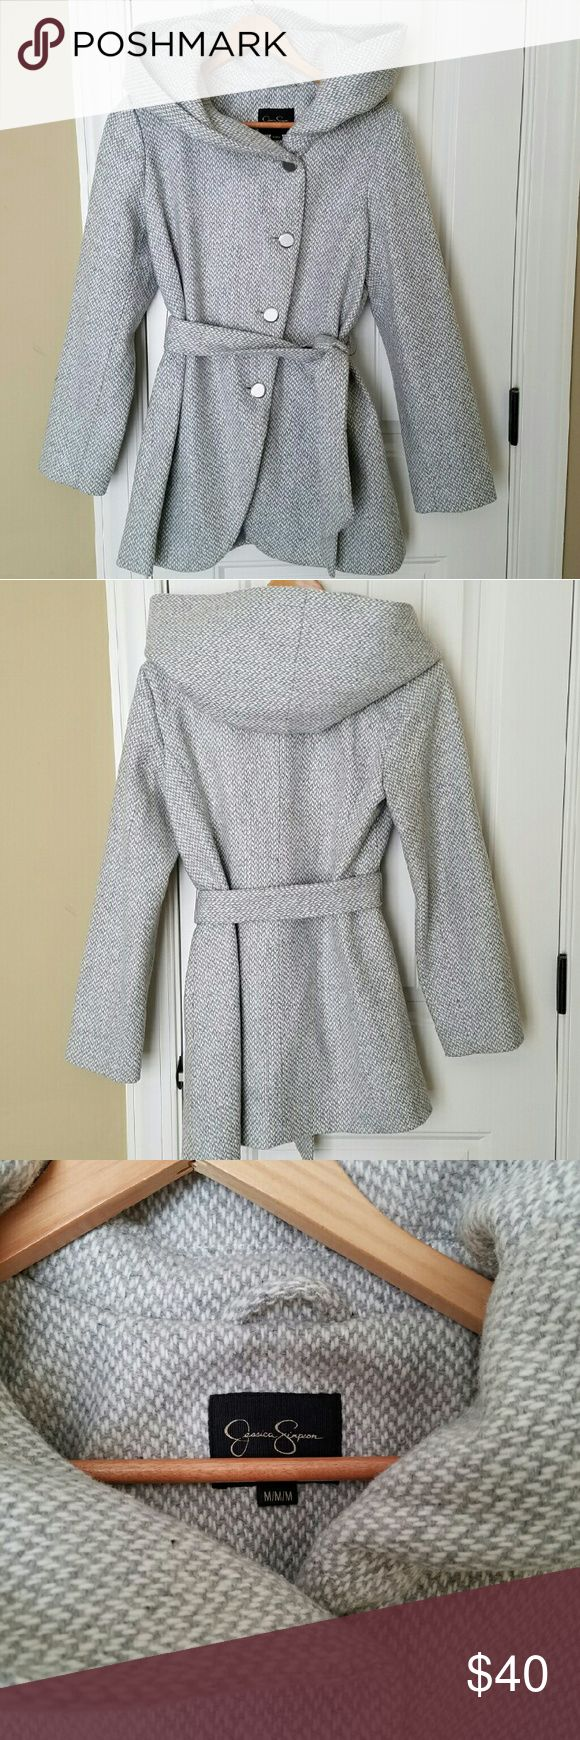 Jessica Simpson Wool Blend Hooded Coat NWOT coat by Jessica Simpson. Lovely cape hood amd tie waist. Single breasted buttons. This is great for the cold as it is quite heavy. Jessica Simpson Jackets & Coats